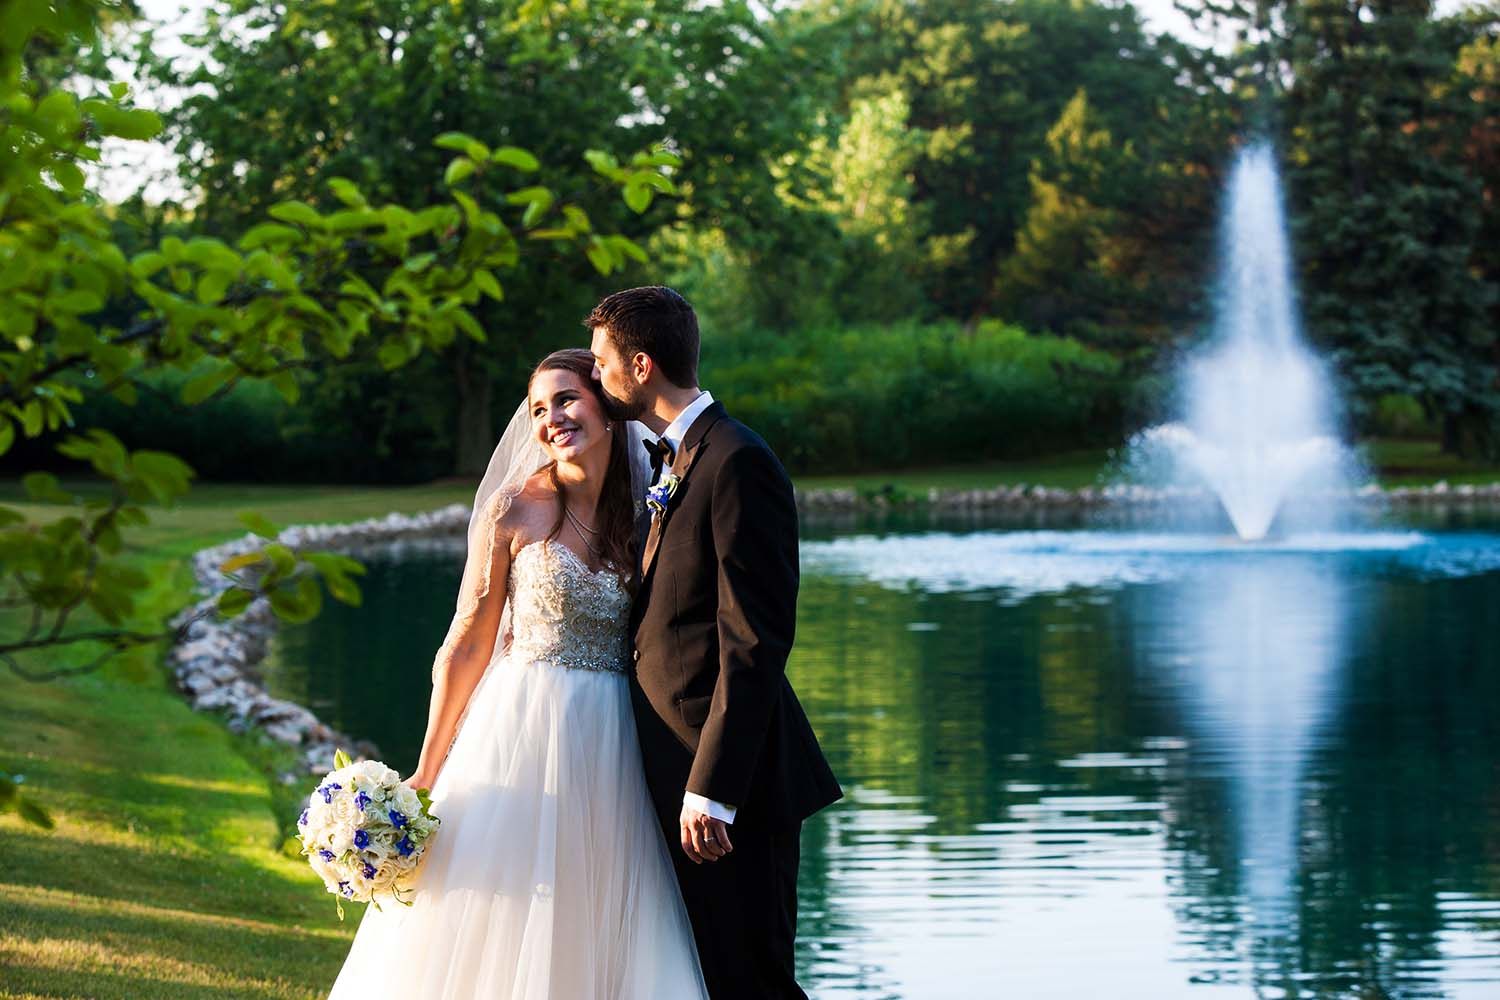 Bride Groom Country Club Pond Portrait